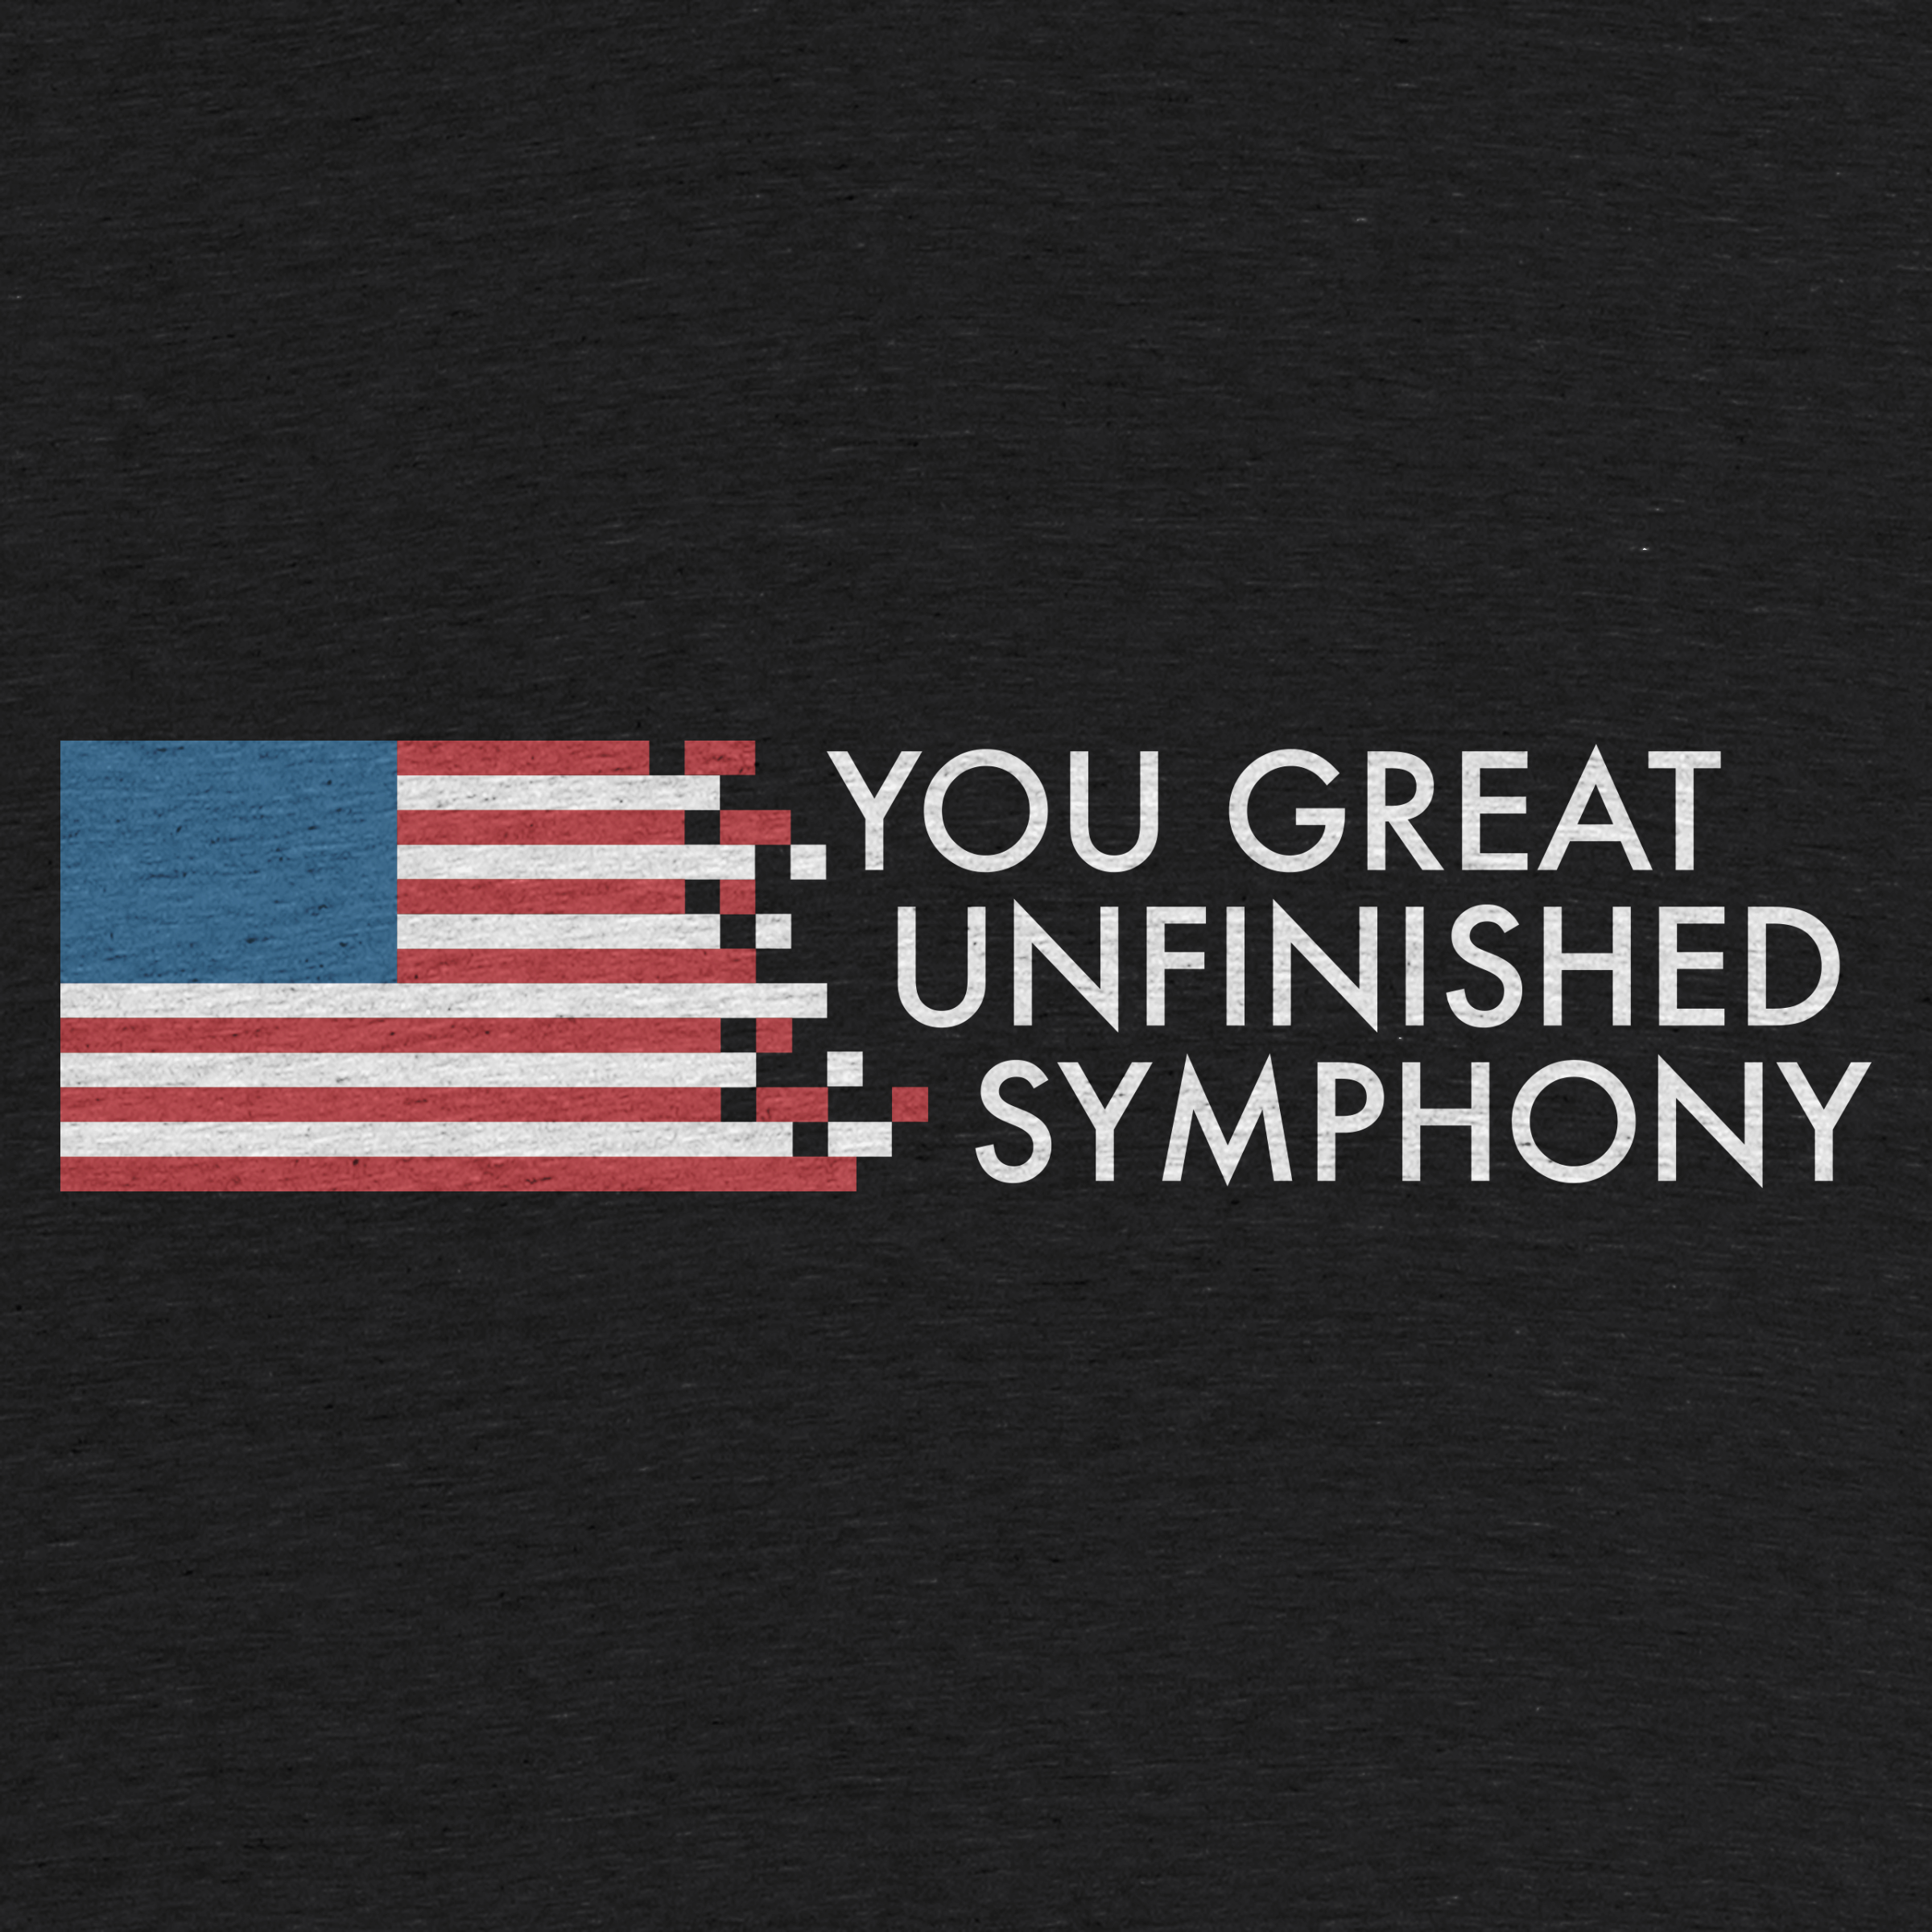 You Great Unfinished Symphony